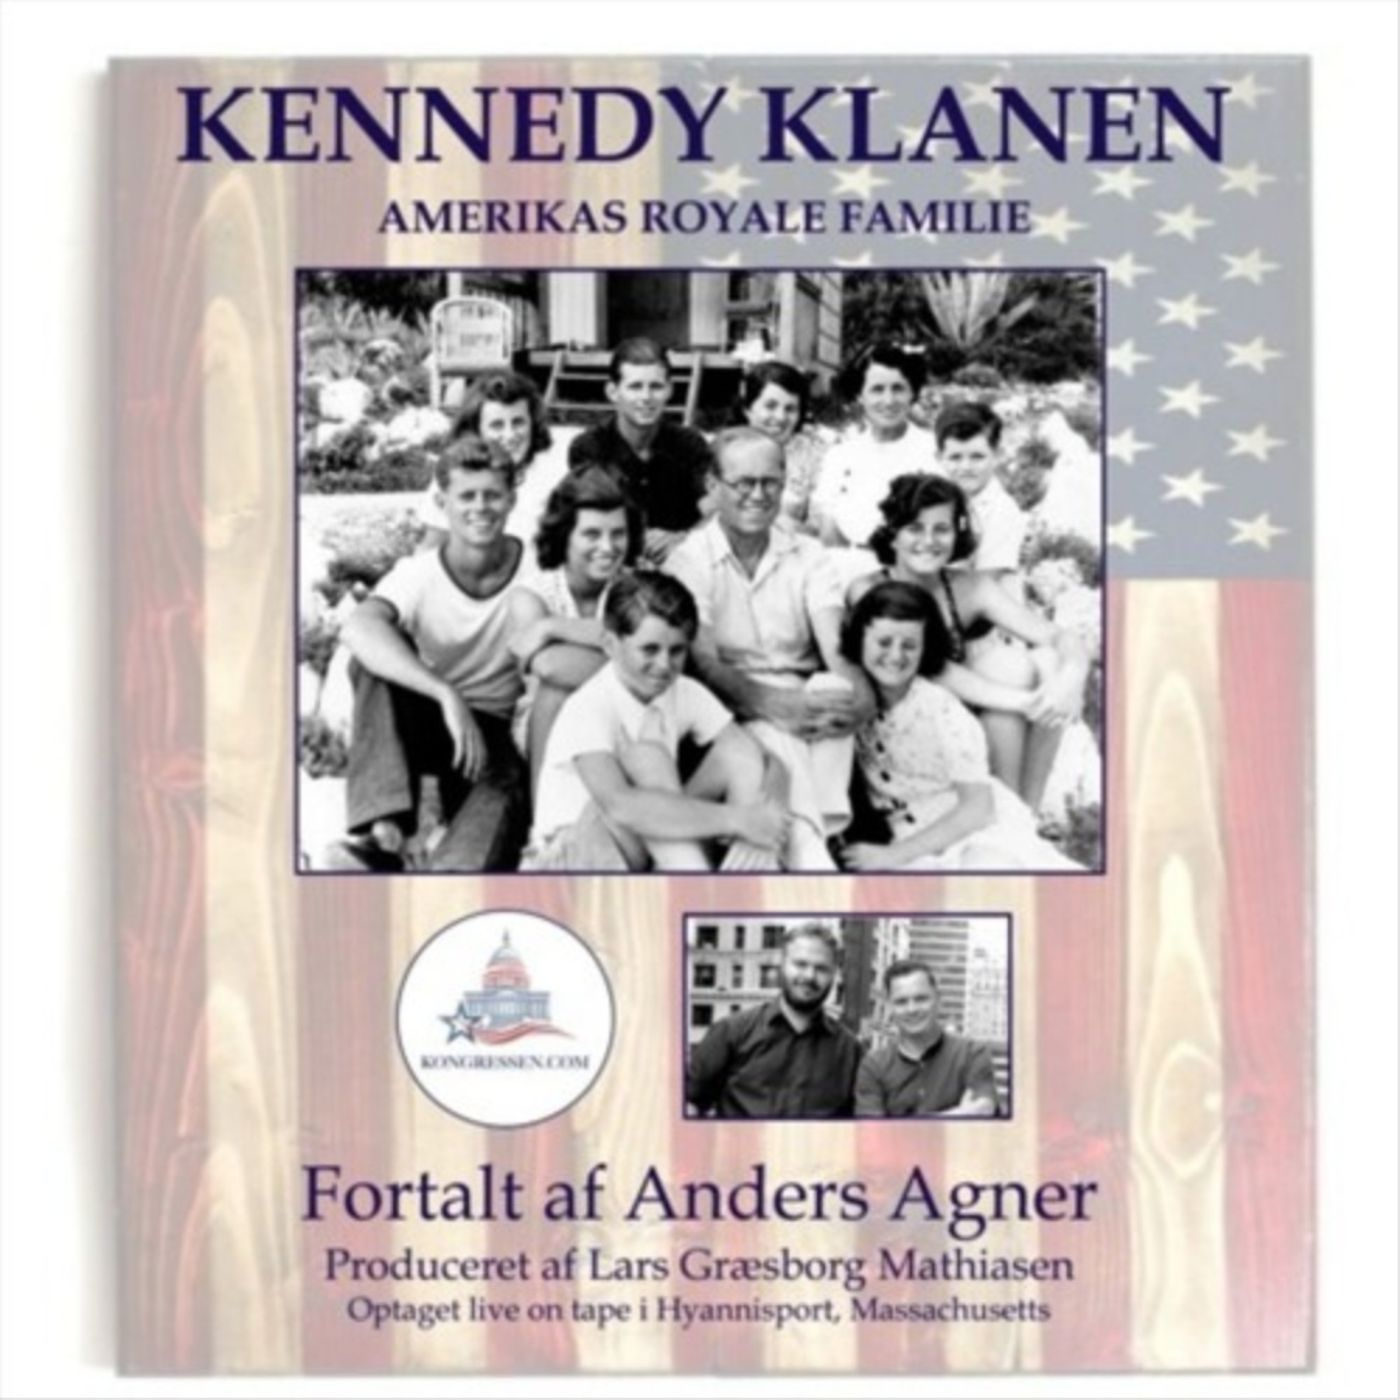 Kennedy klanen del 3: Ted Kennedy